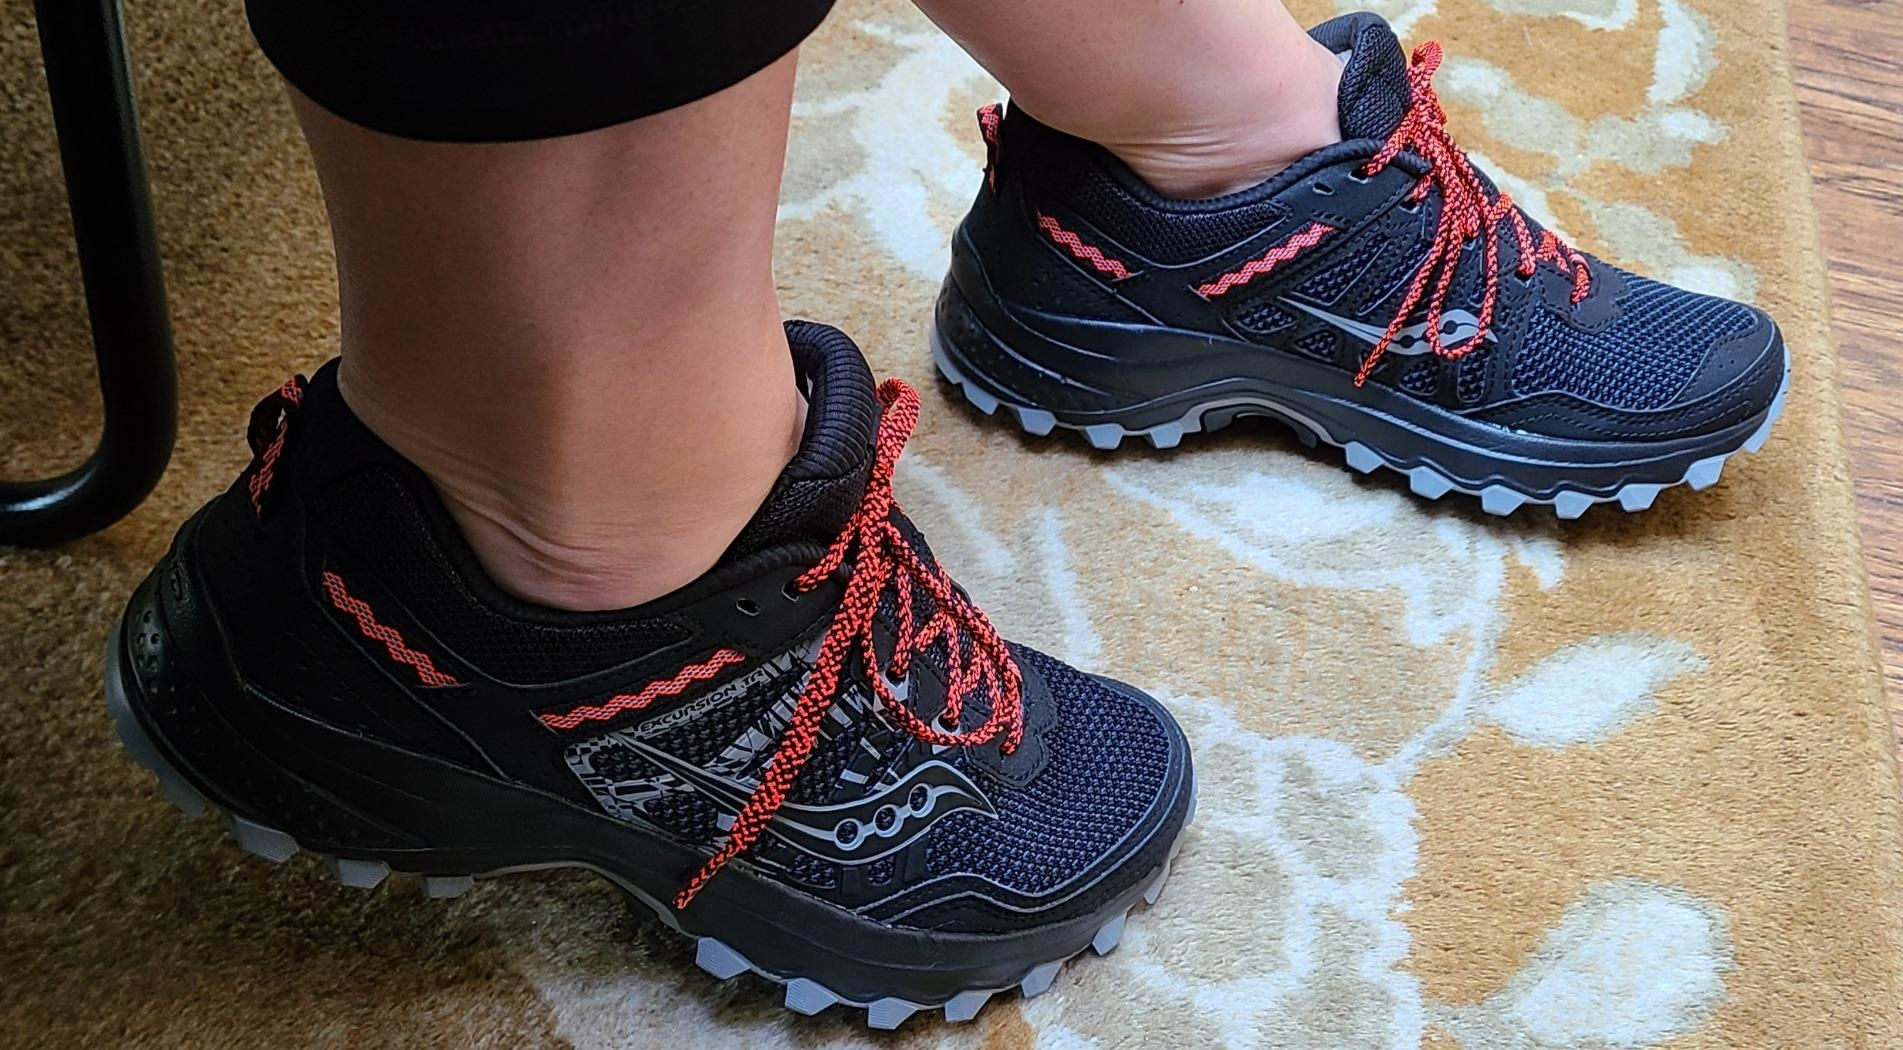 A reviewer wearing the durable sneakers with laces and a textured bottom that prevents slipping